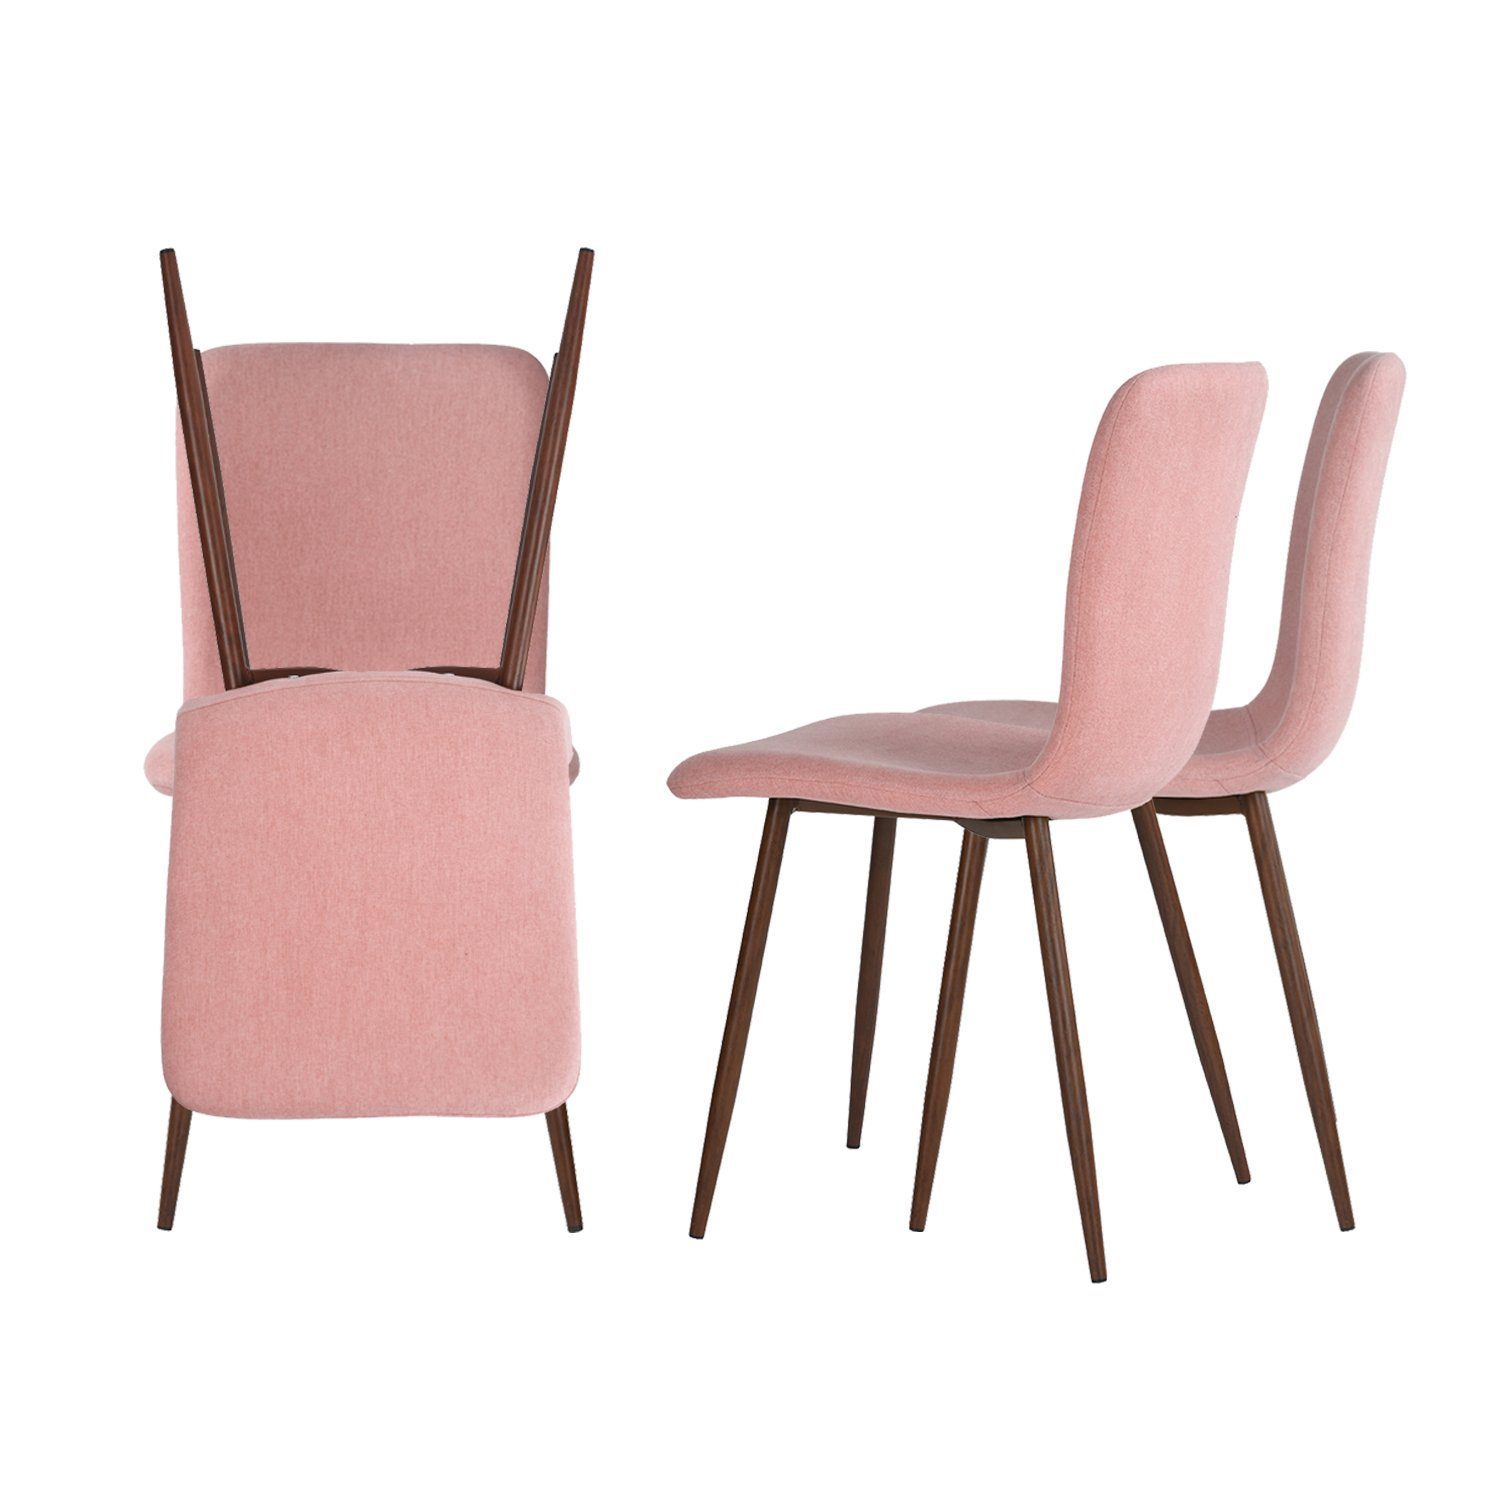 Coavas Kitchen Dining Chairs Set Of 4 Fabric Cushion Side